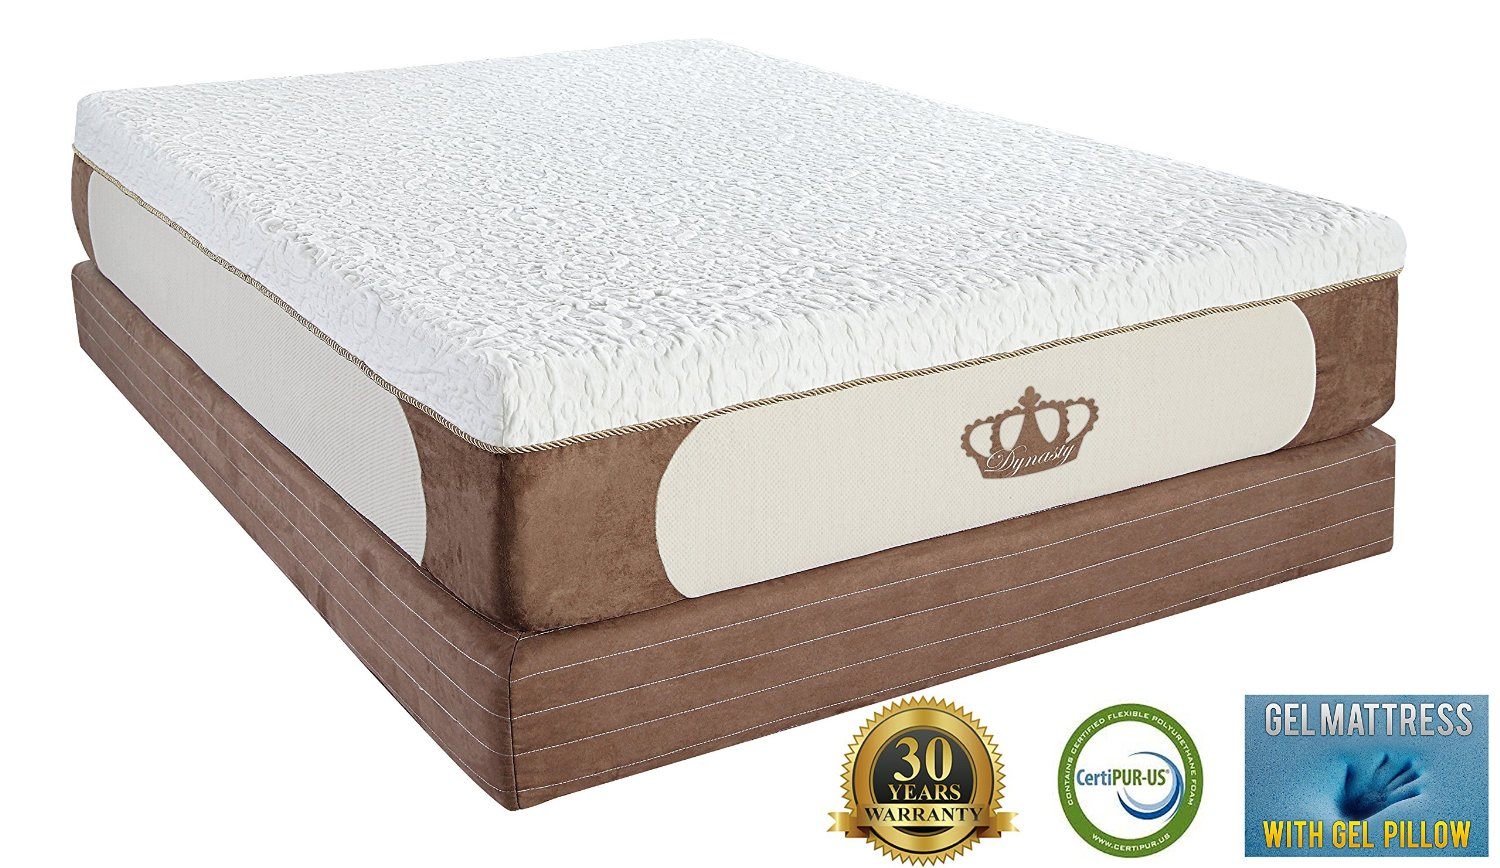 gel memory foam mattress memory foam mattress topper queen size gel pad 2 will gelinfused. Black Bedroom Furniture Sets. Home Design Ideas